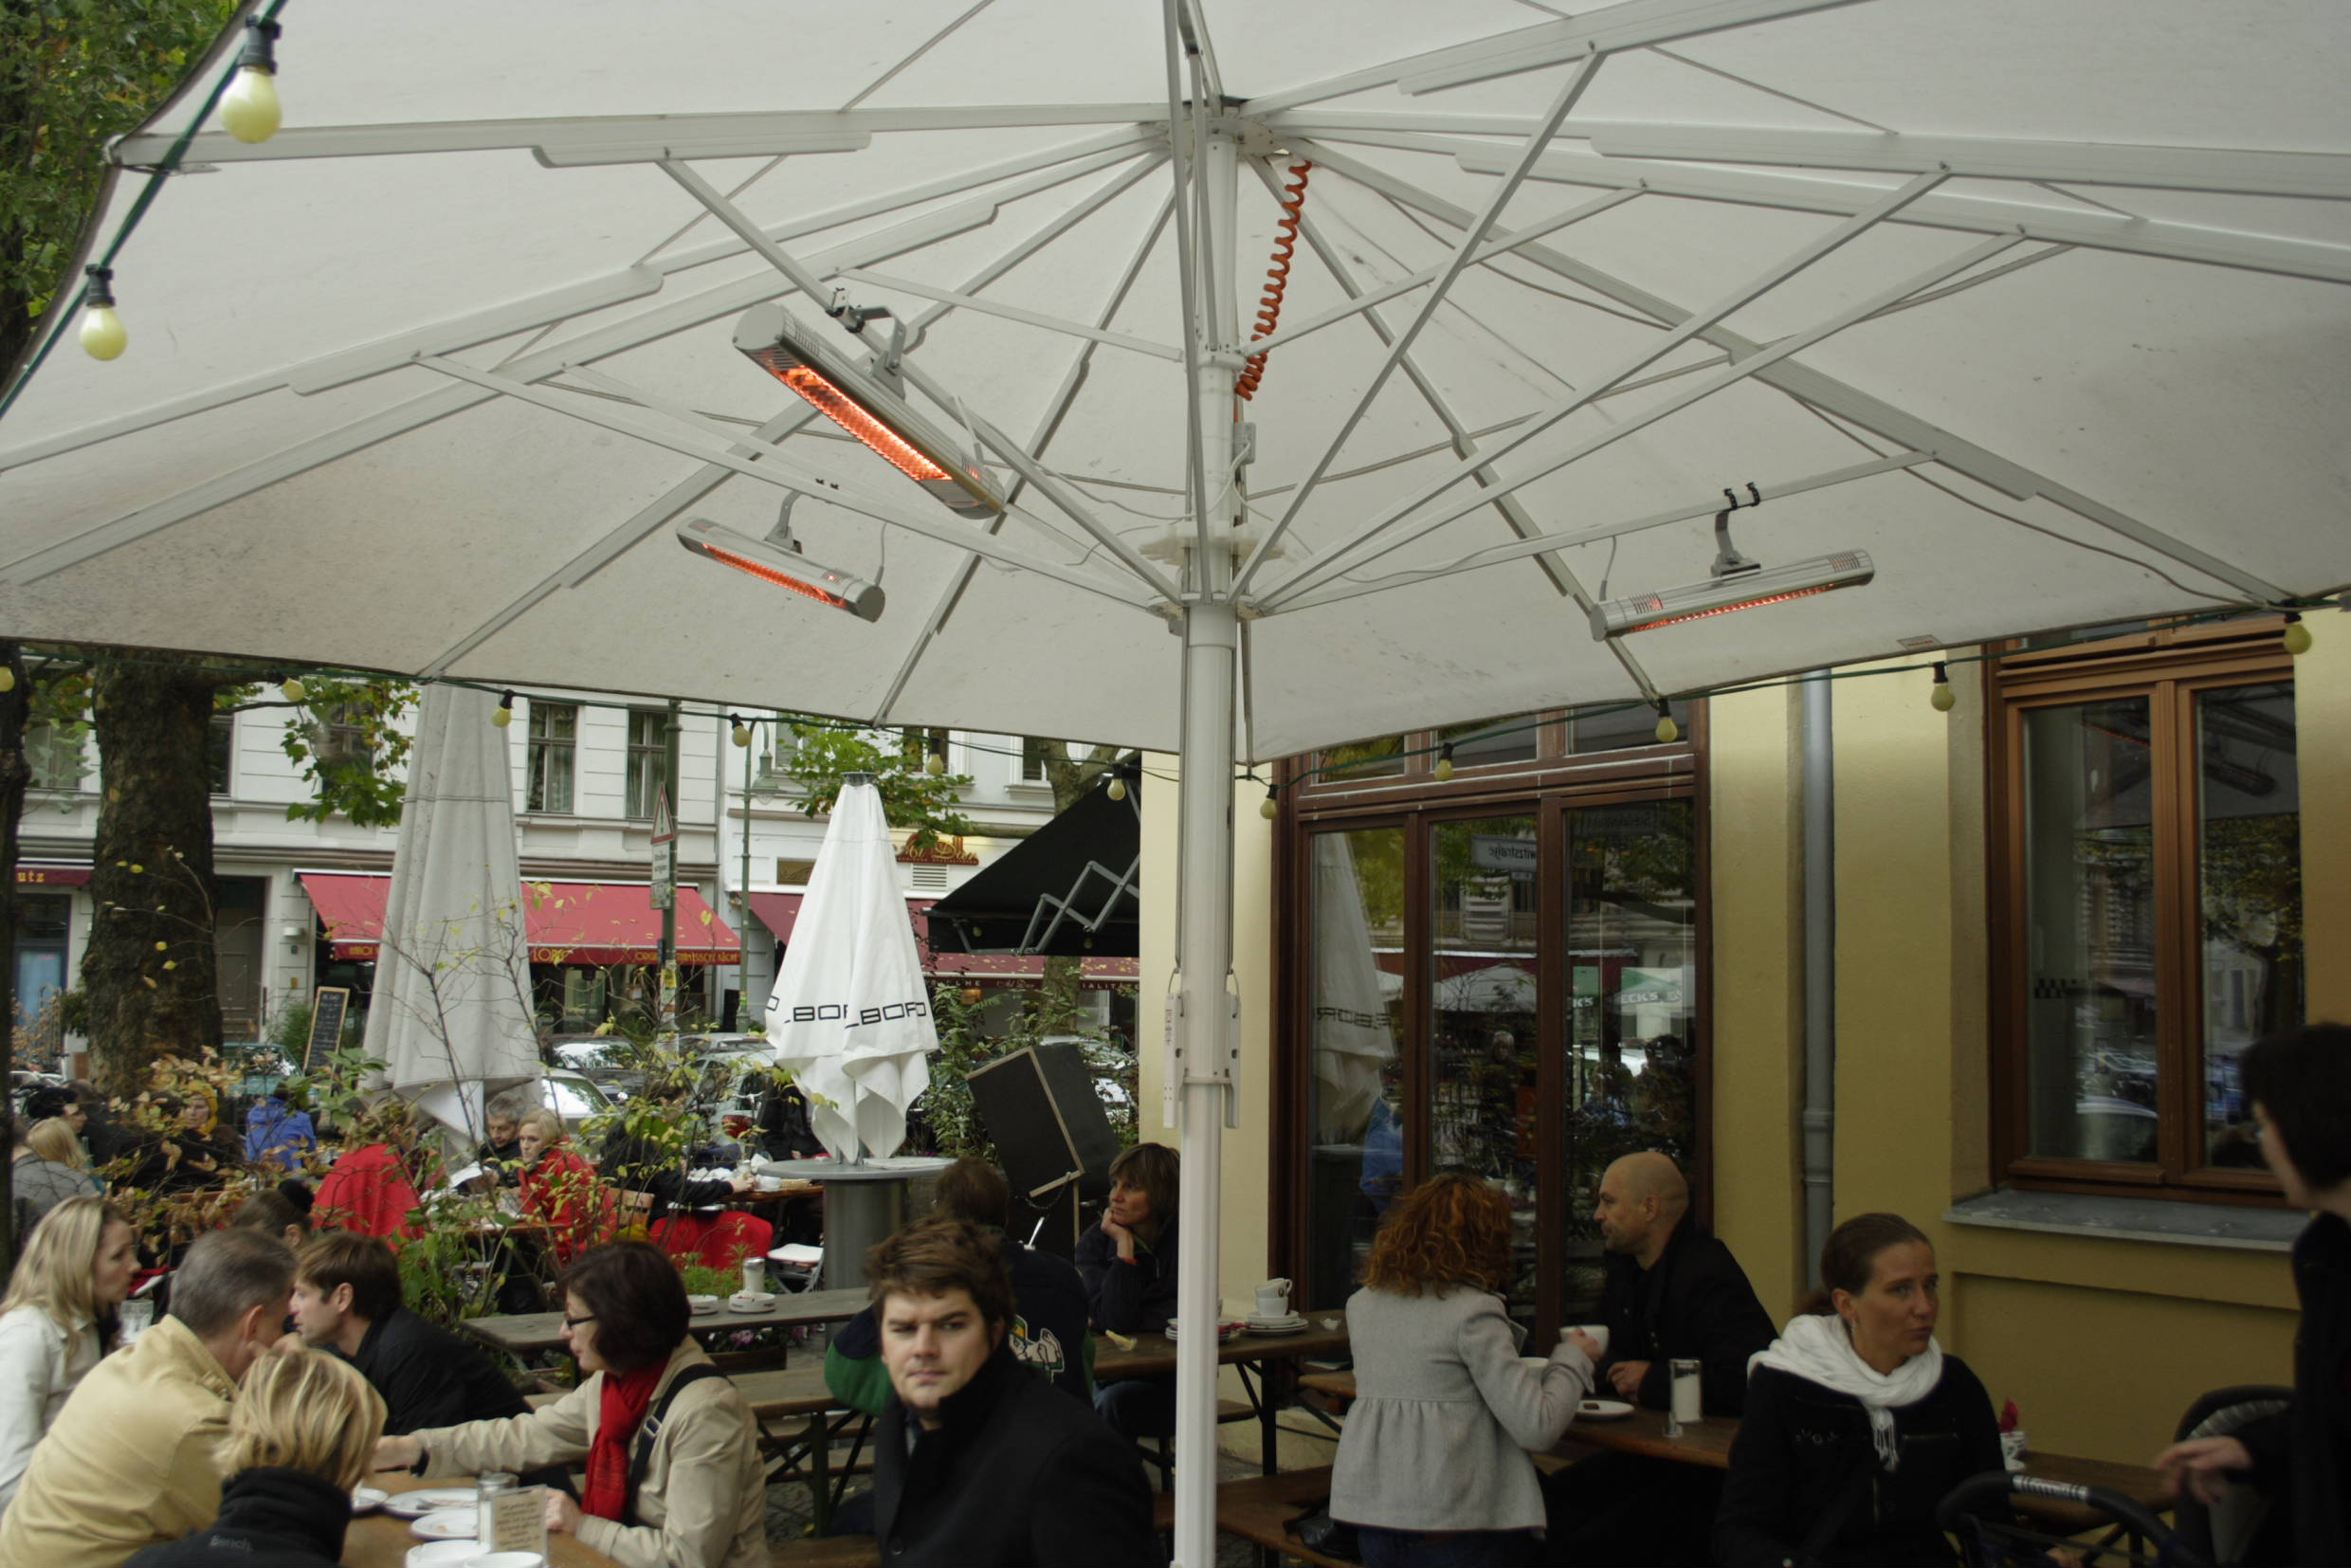 TERM 2000 IP44 sous parasol